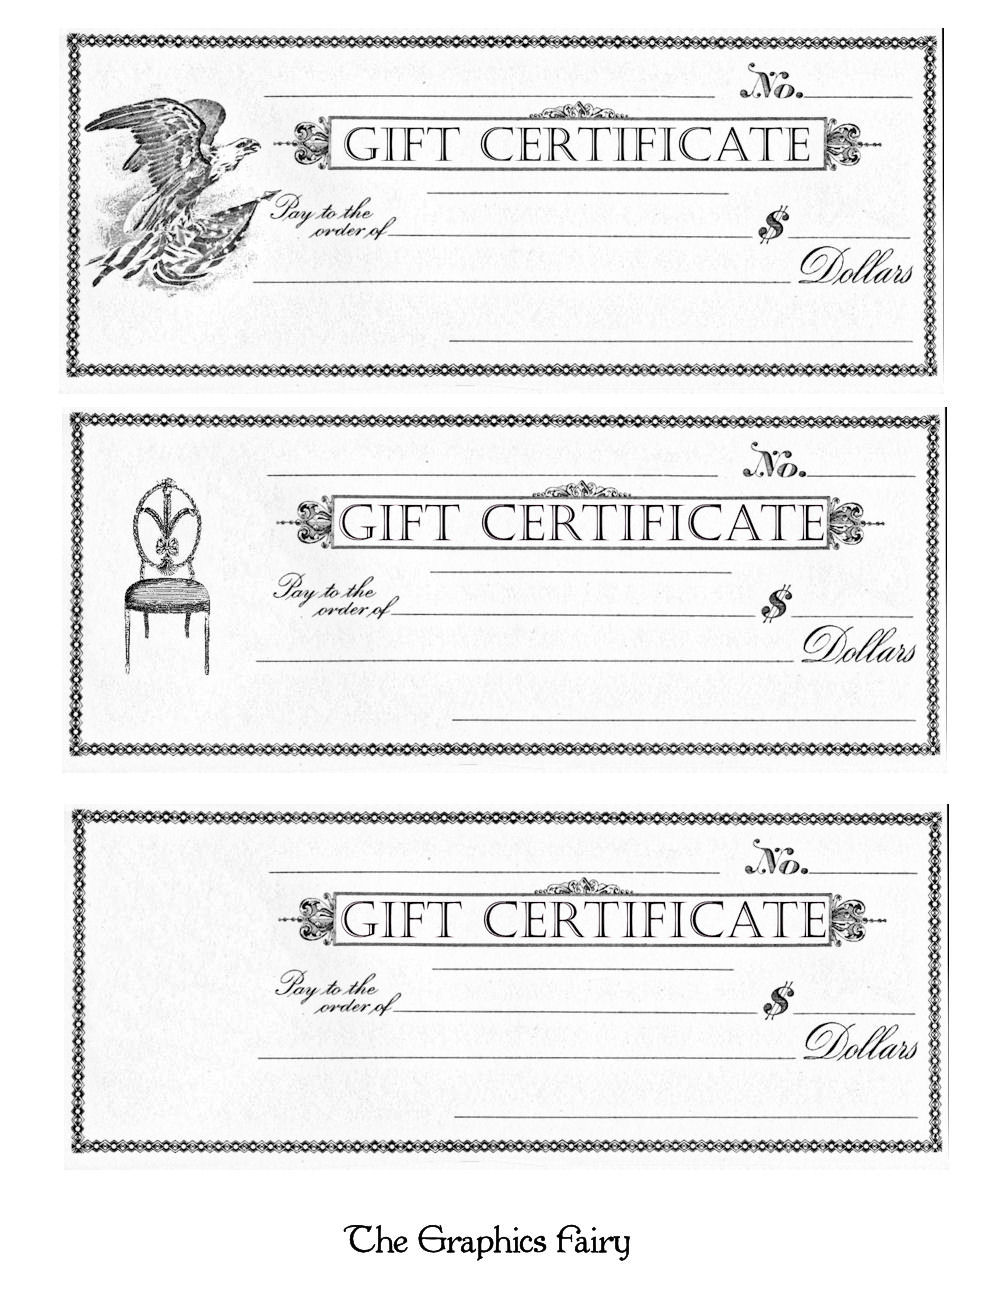 Downloadable Gift Certificate Templates Image Collections Creative